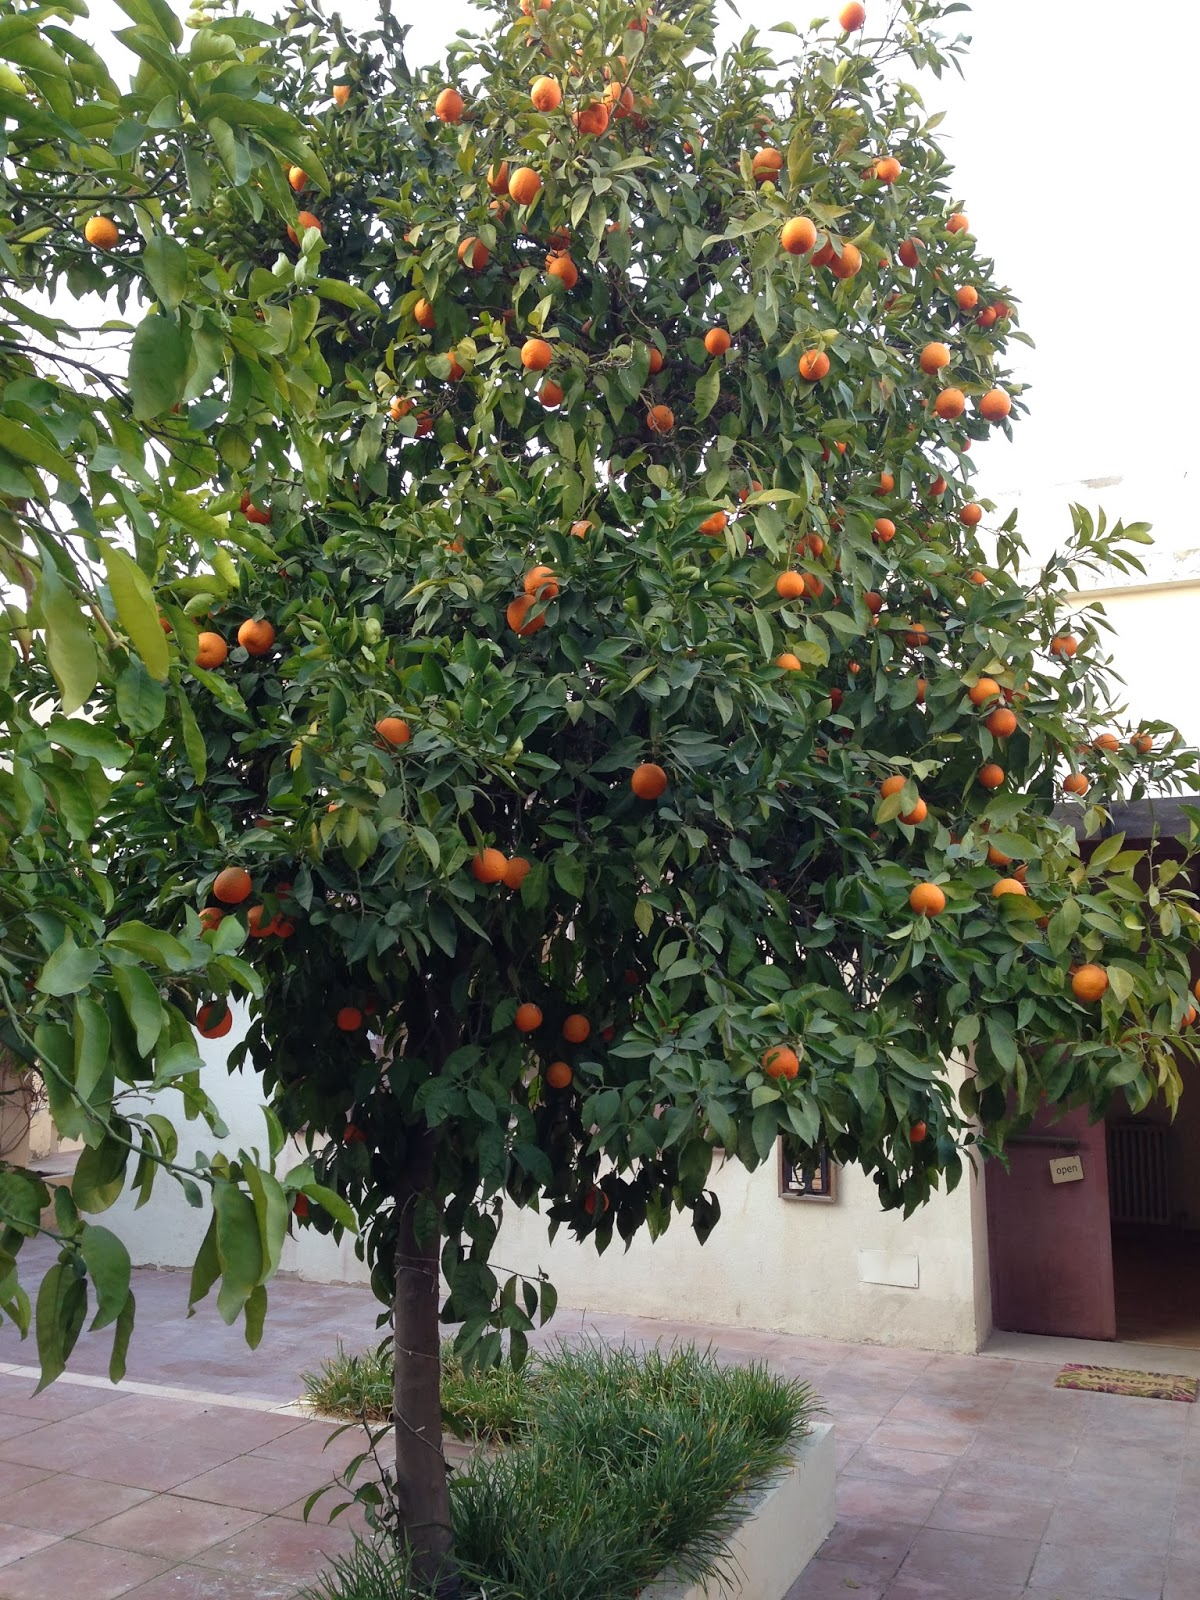 A lovely orange tree at the entrance of Nabad Gallery